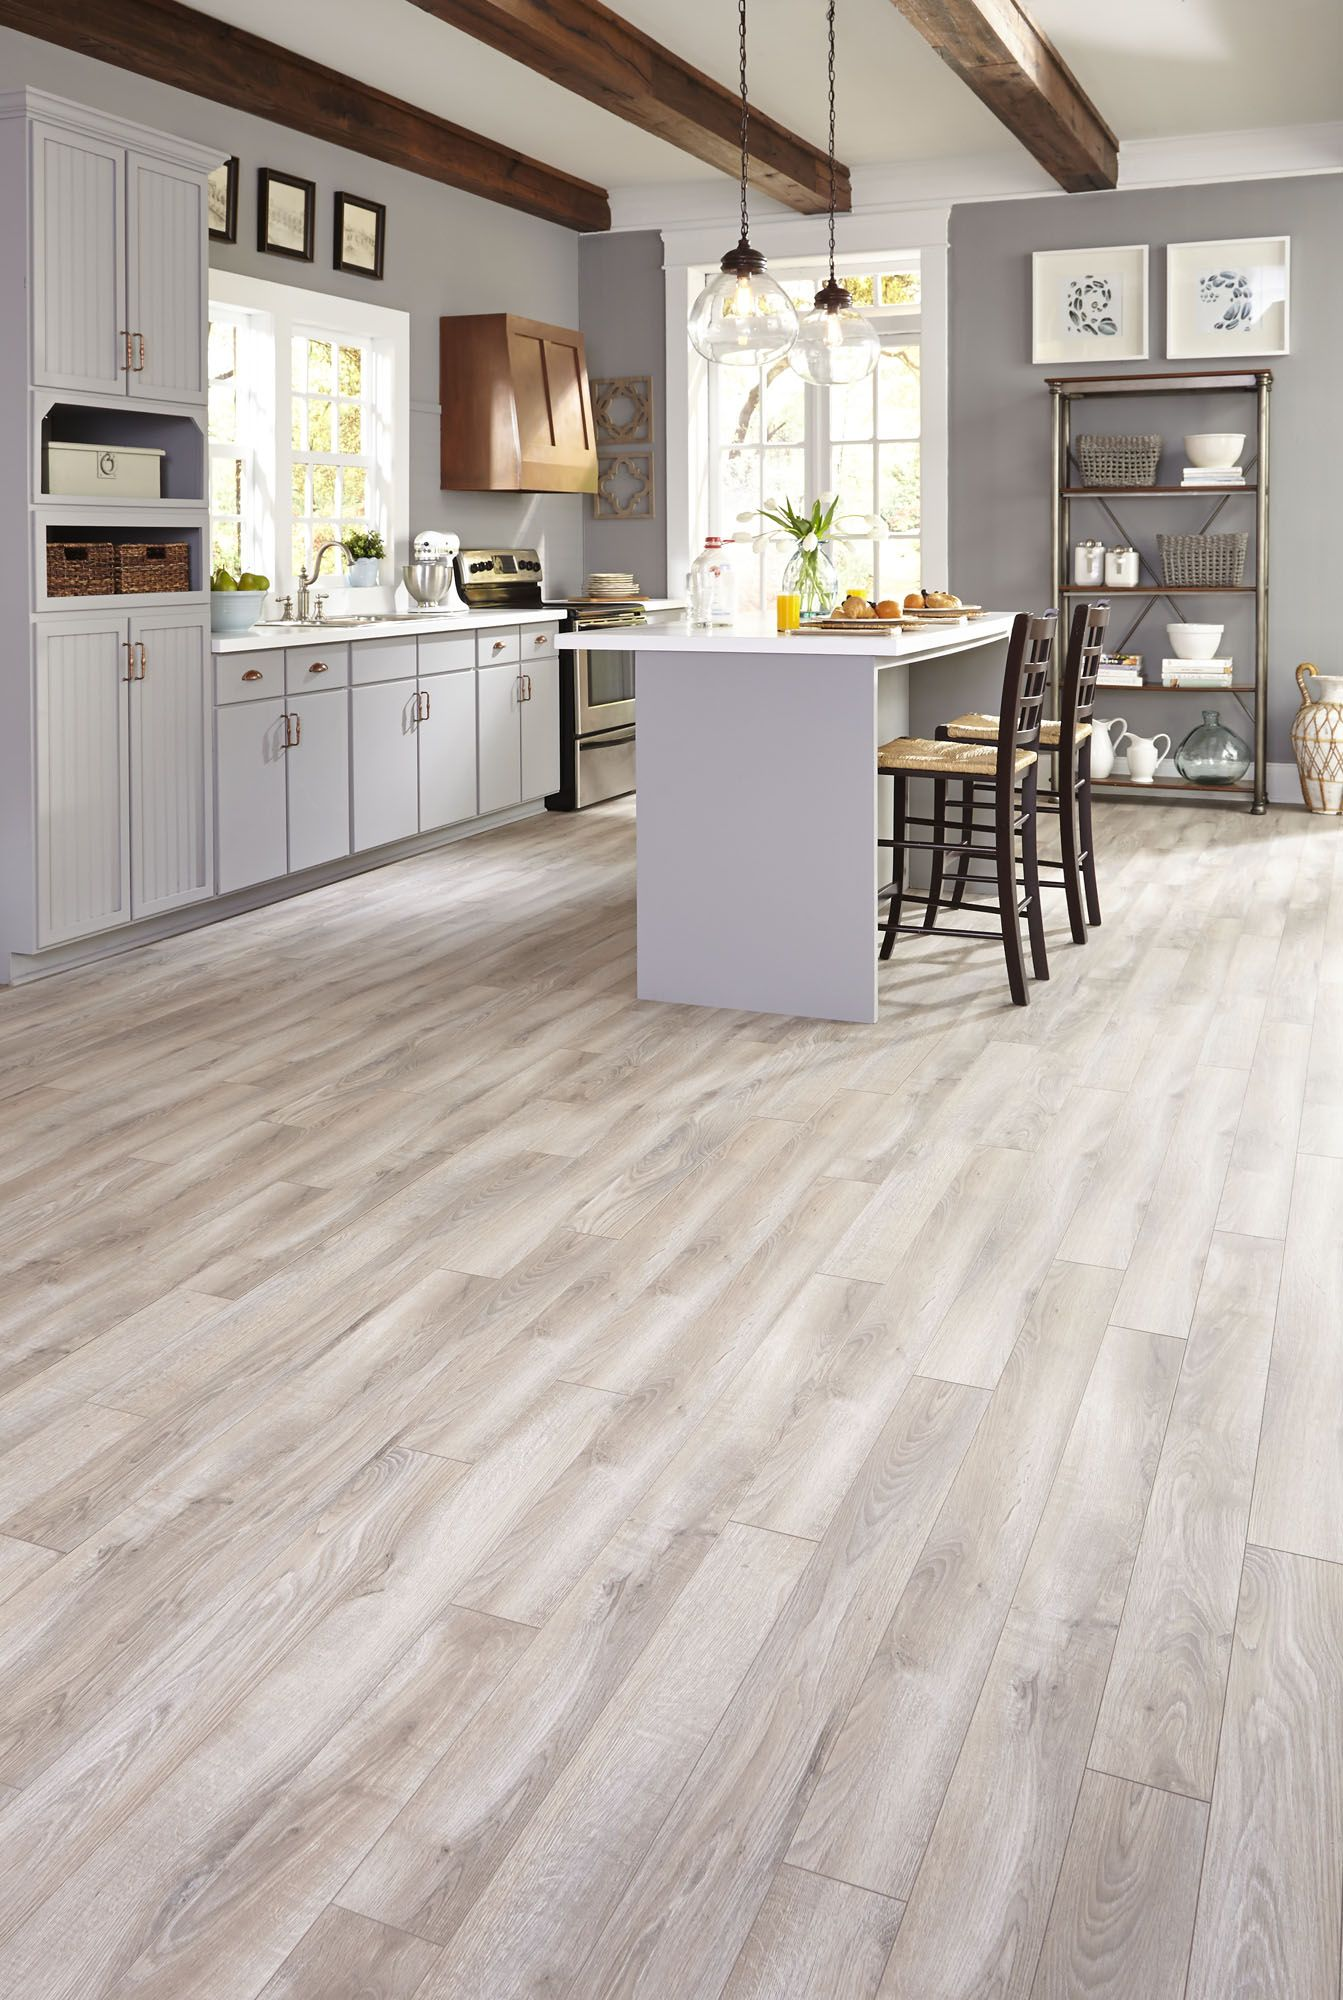 Gray tones mixed with light creams and tans suggest a floor worn